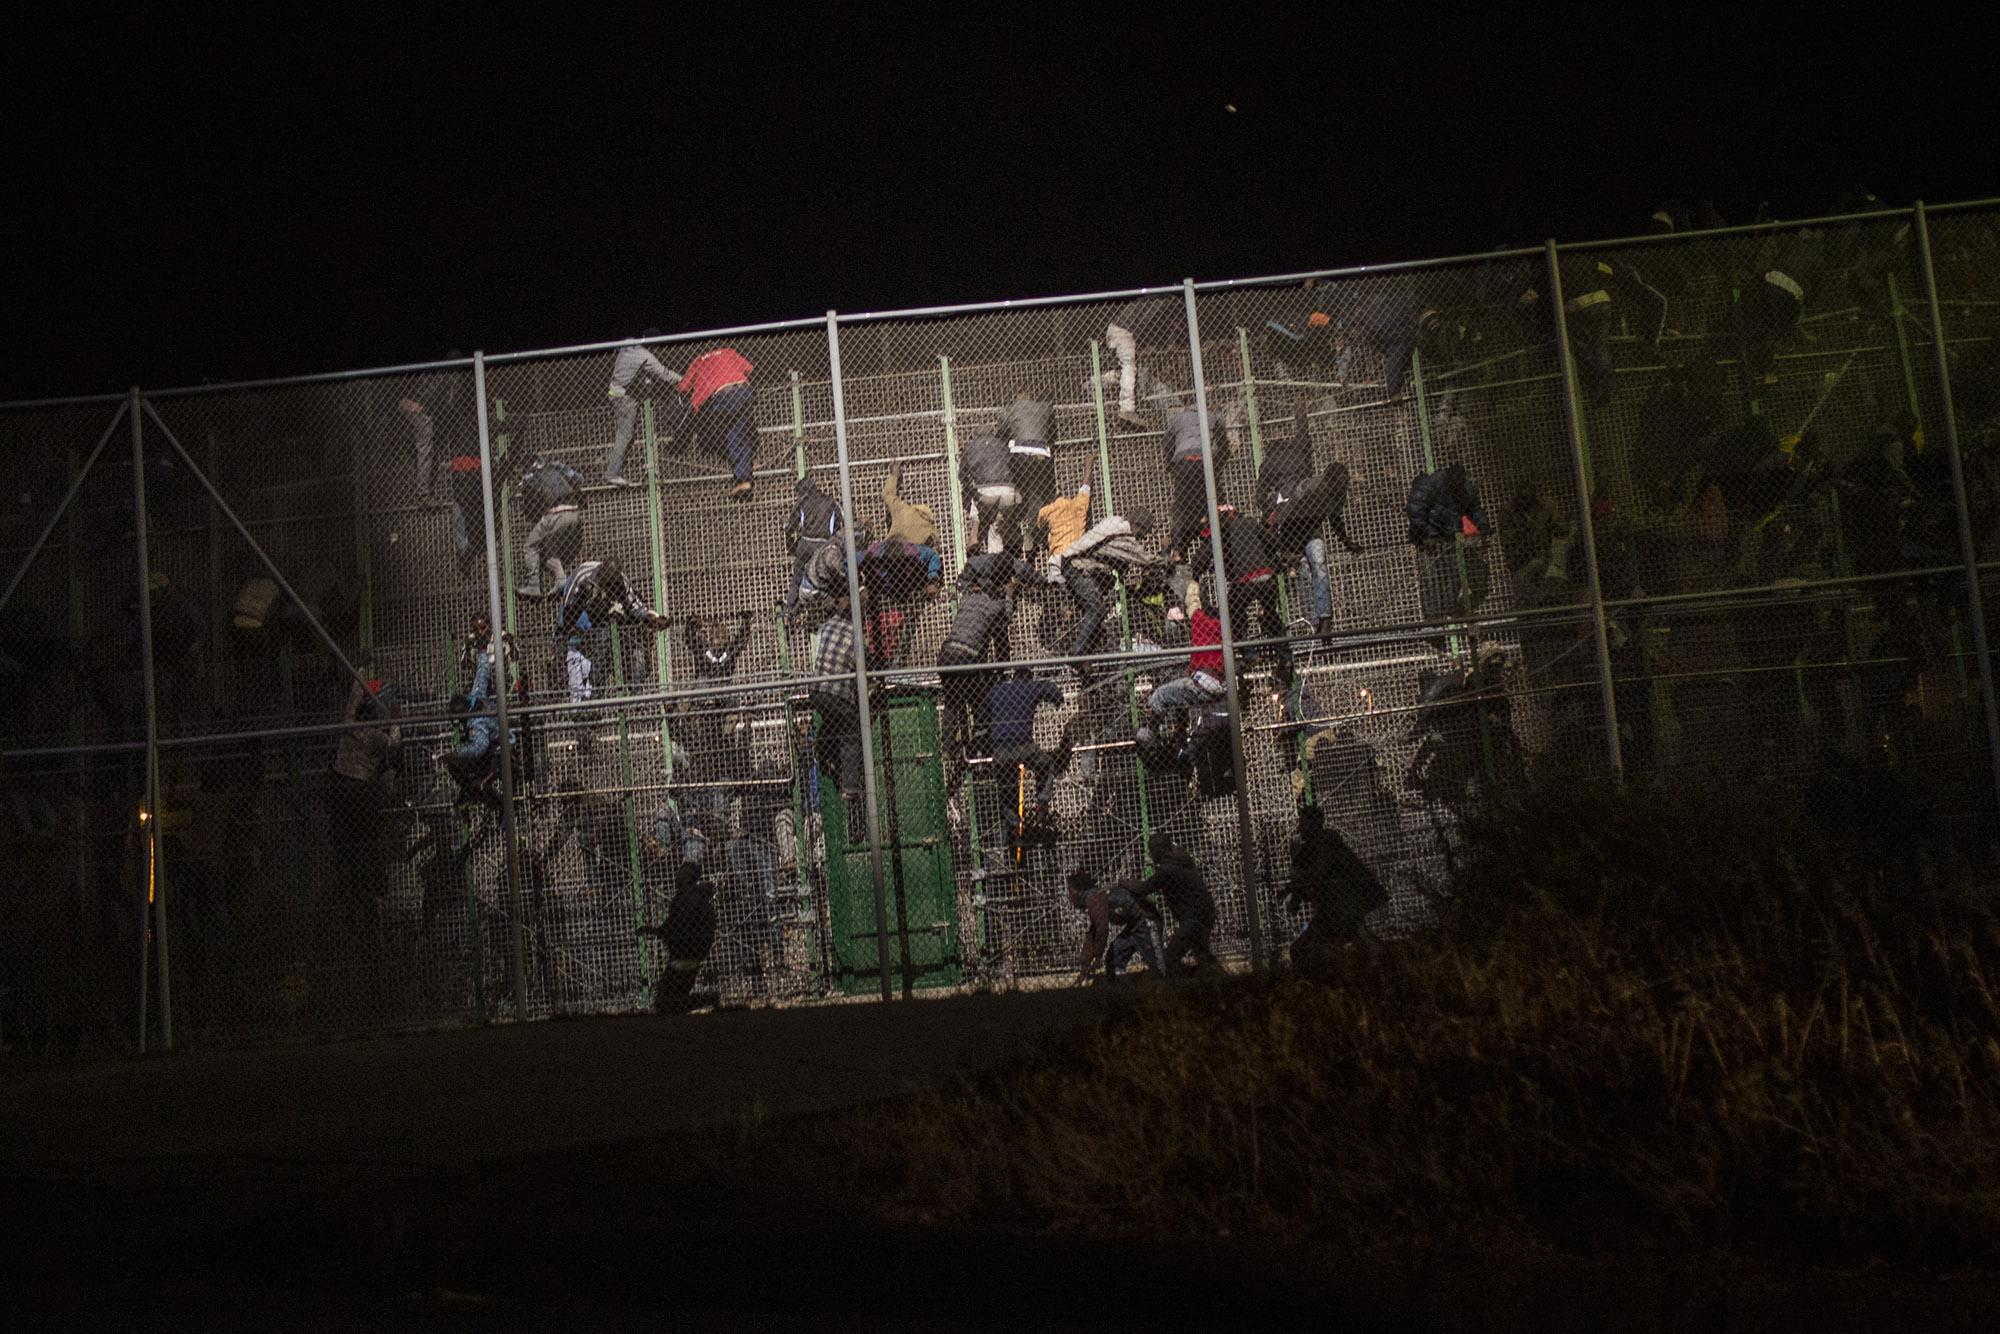 Sub-Saharan migrants scale a metallic fence that divides Morocco and the Spanish enclave of Melilla, early in the morning on Wednesday, May 28, 2014. More than 400 African migrants managed to jump the barbed-wire border fence in SpainÌs North African enclave of Melilla, hundreds of others were blocked and beaten back by Moroccan police while the rest were pushed back by the Spanish Guardia Civil. During the pre-dawn border storming, cries of pain and noises of people being hit could be heard as police from both sides tried to prevent dozens of the sub-Saharan migrants from entering the city from Morocco. (© Santi Palacios)